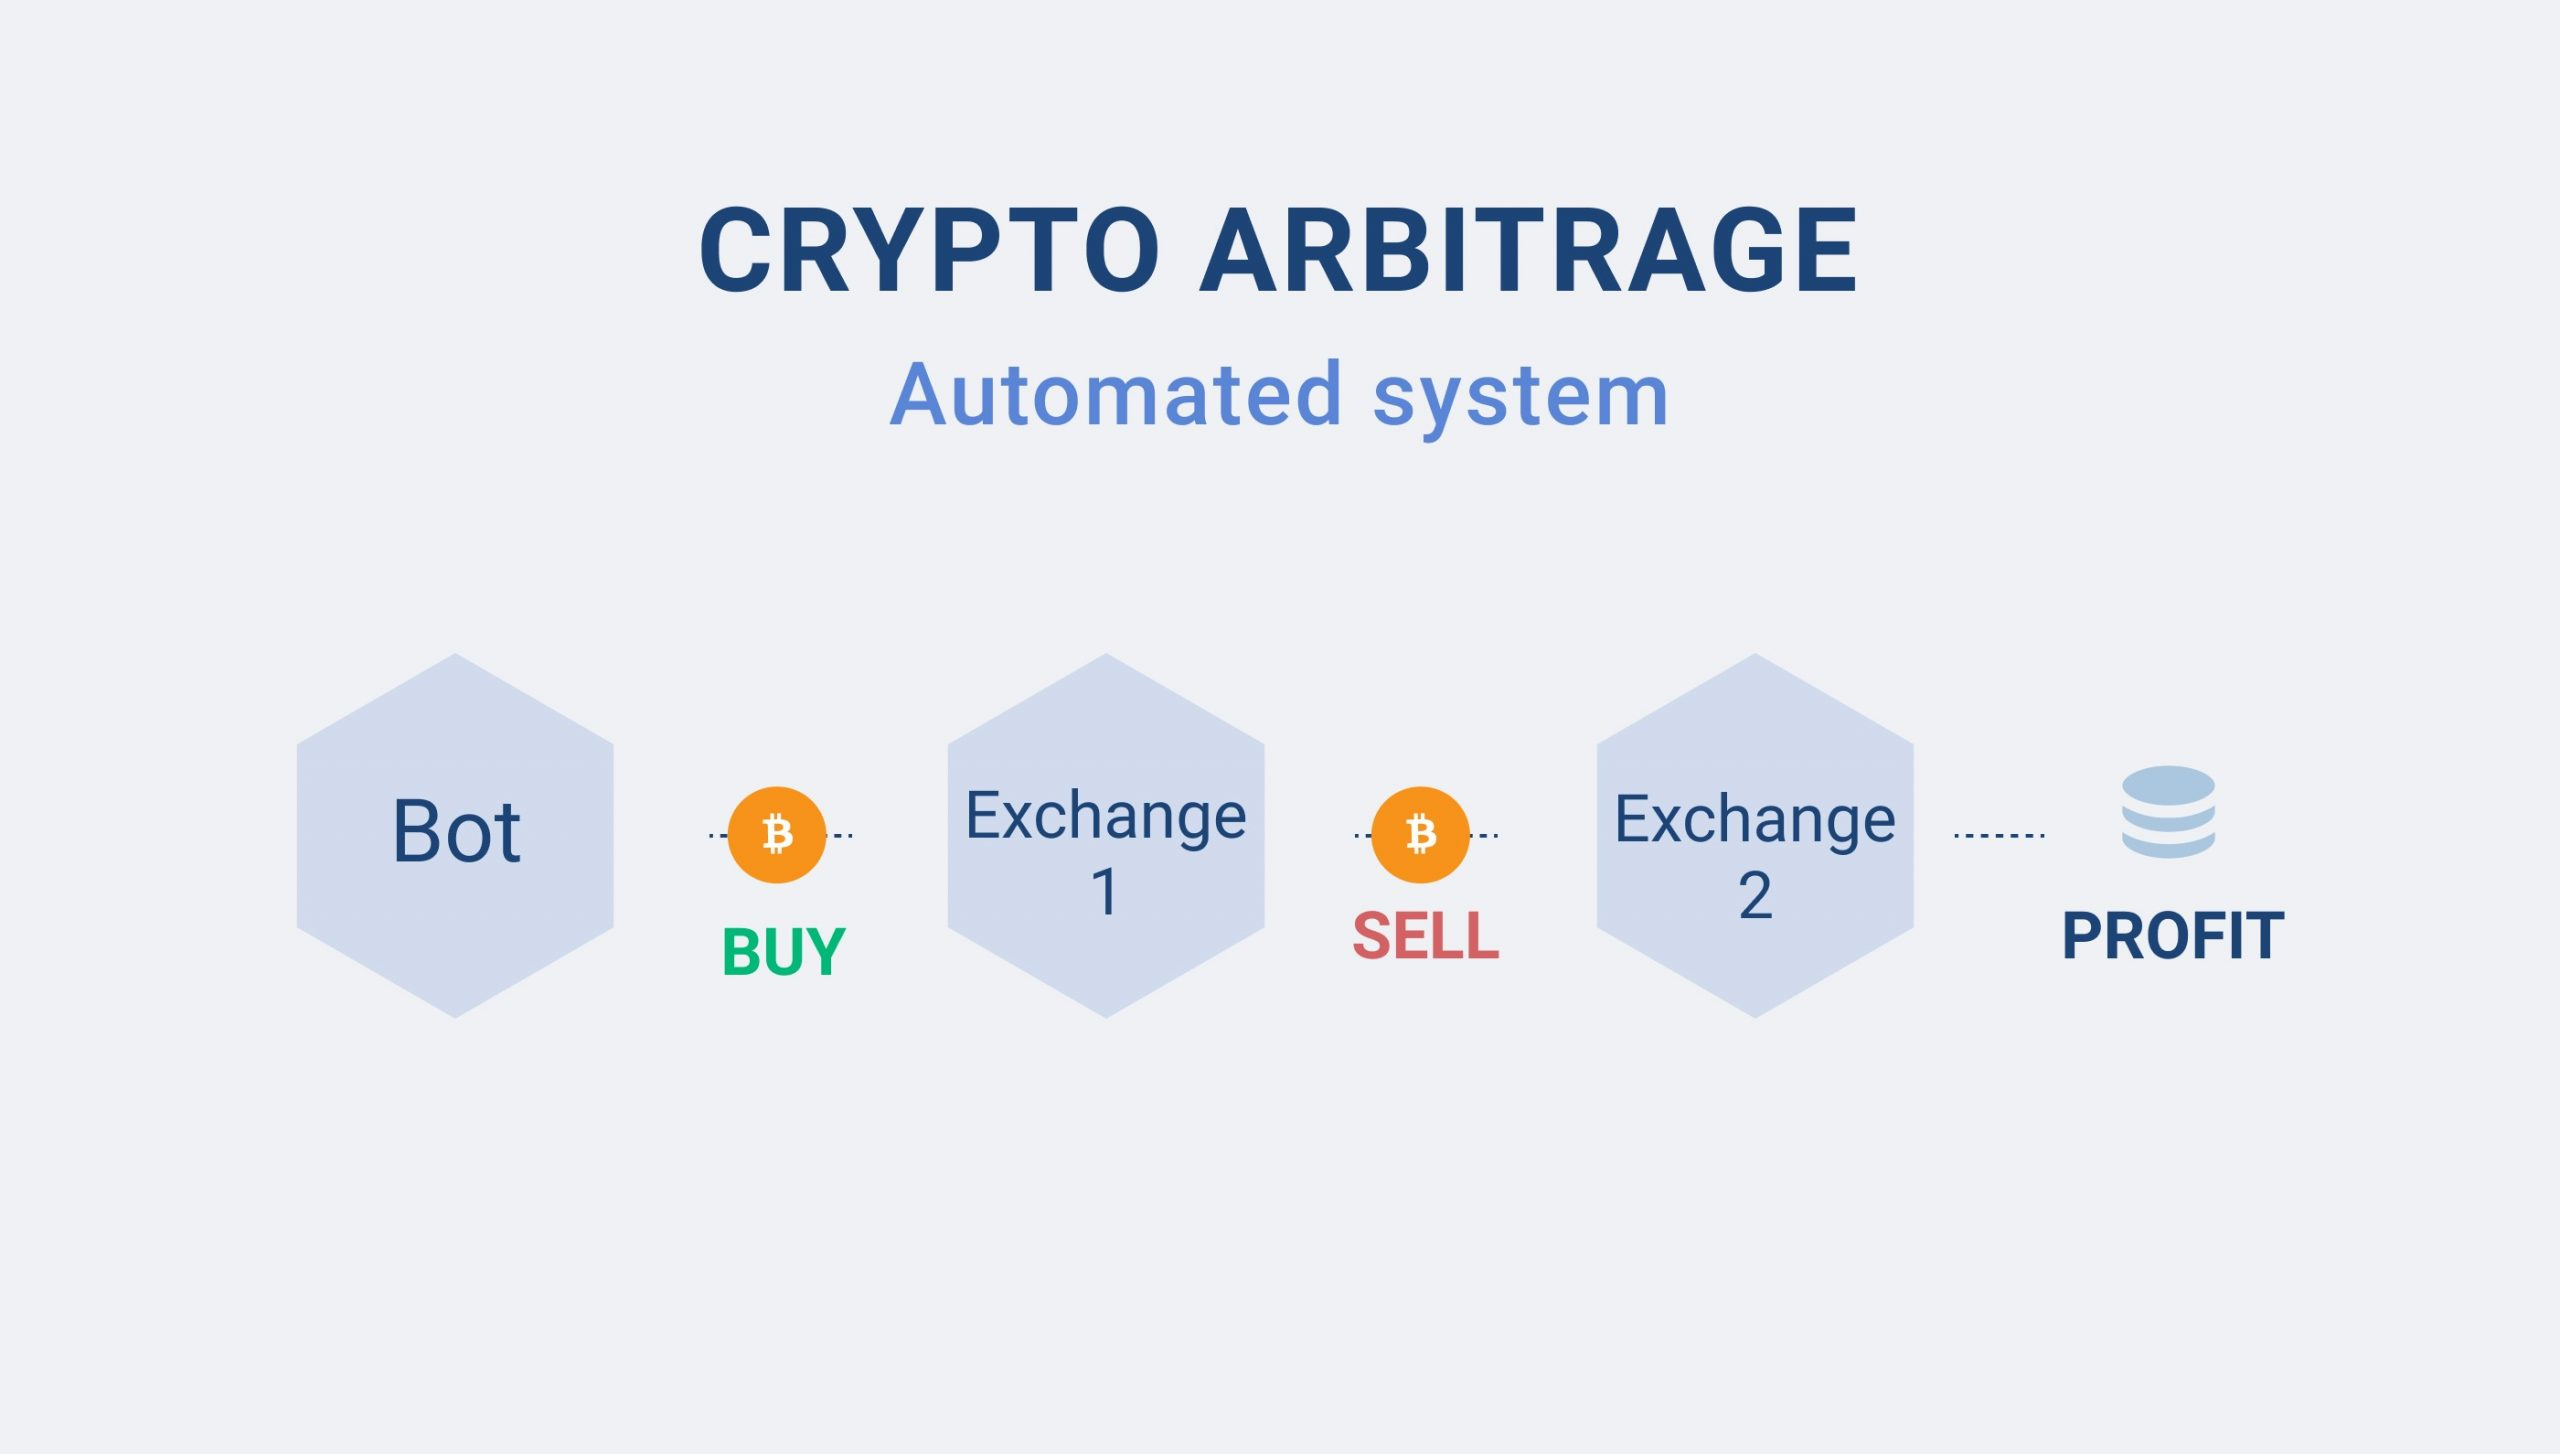 Bitcoin arbitrage bots buy the cheaper price from exchange 1 and sell it for higher on exchange 2